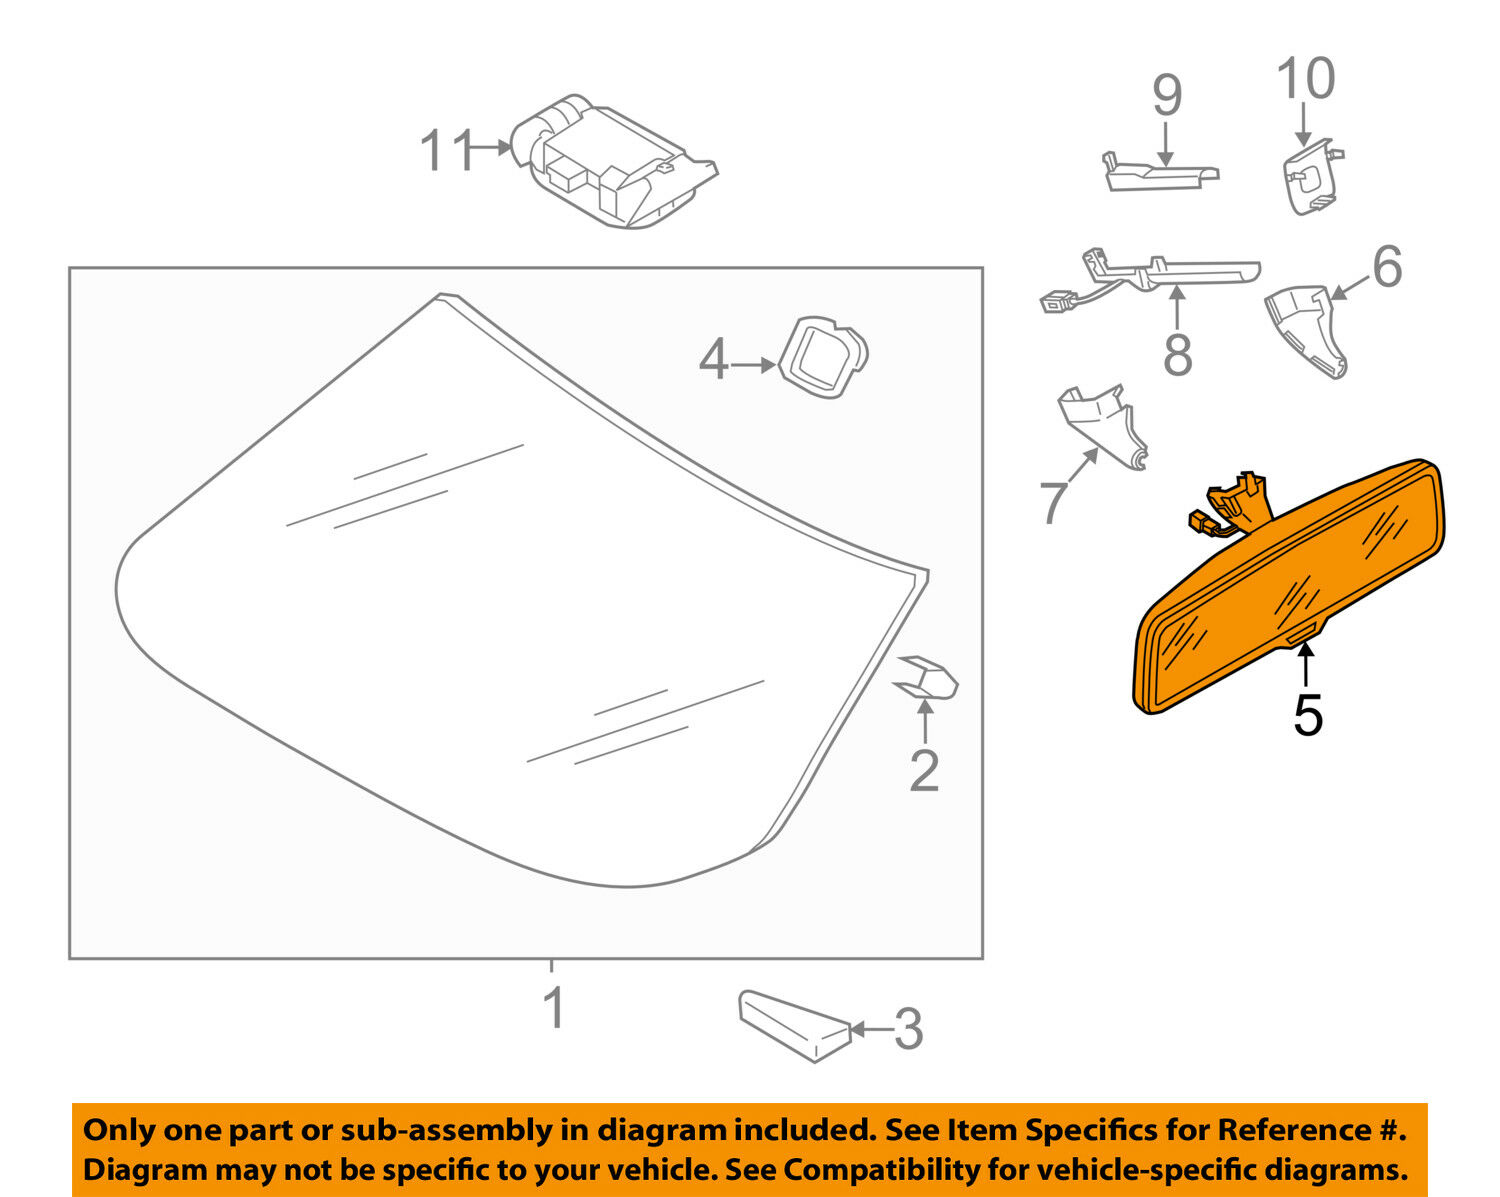 Vw Volkswagen Oem 12 15 Passat Inside Rearview Rear View Mirror Gentex 177 Wiring Diagram 1 Of 2free Shipping